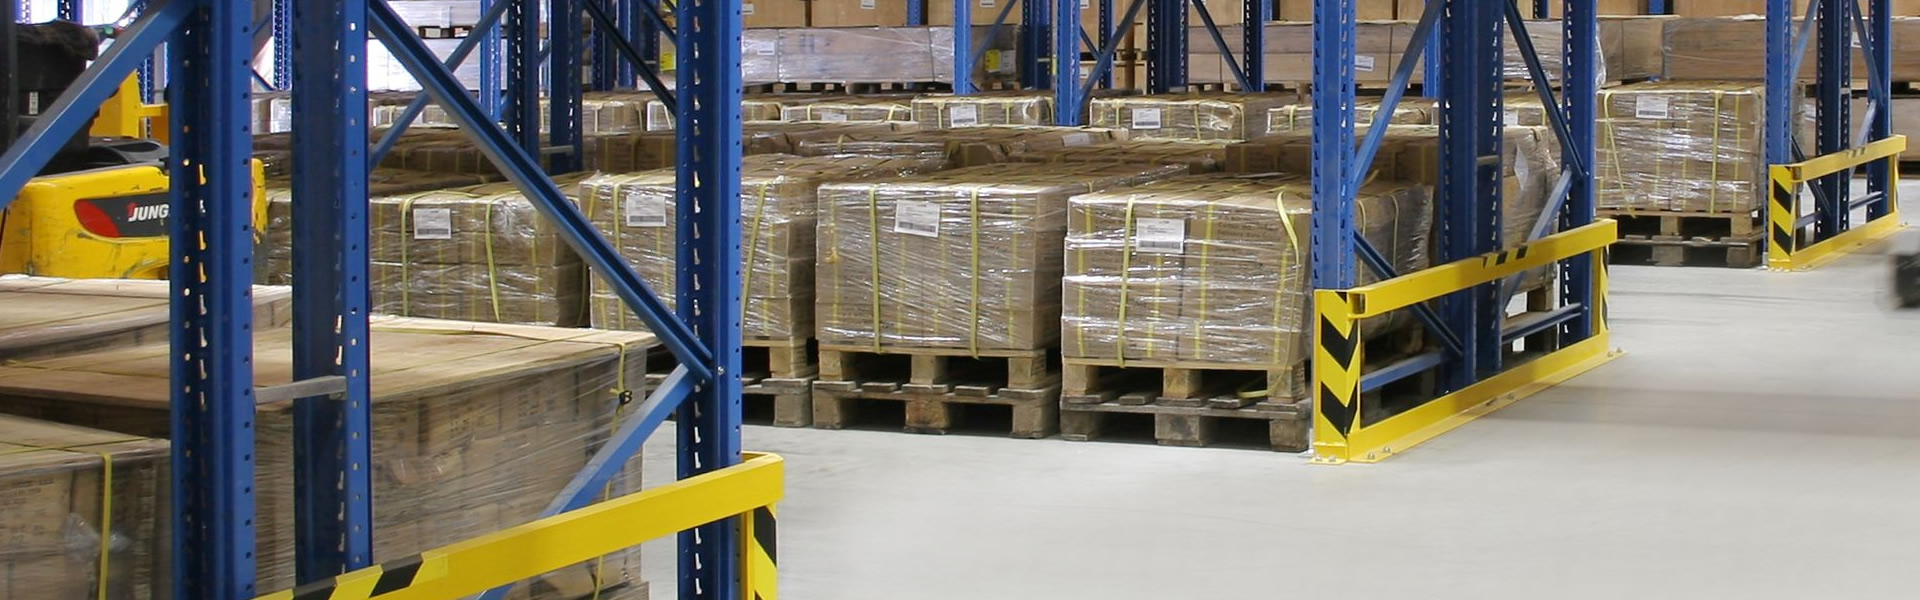 STRATEGICALLY LOCATED WAREHOUSES